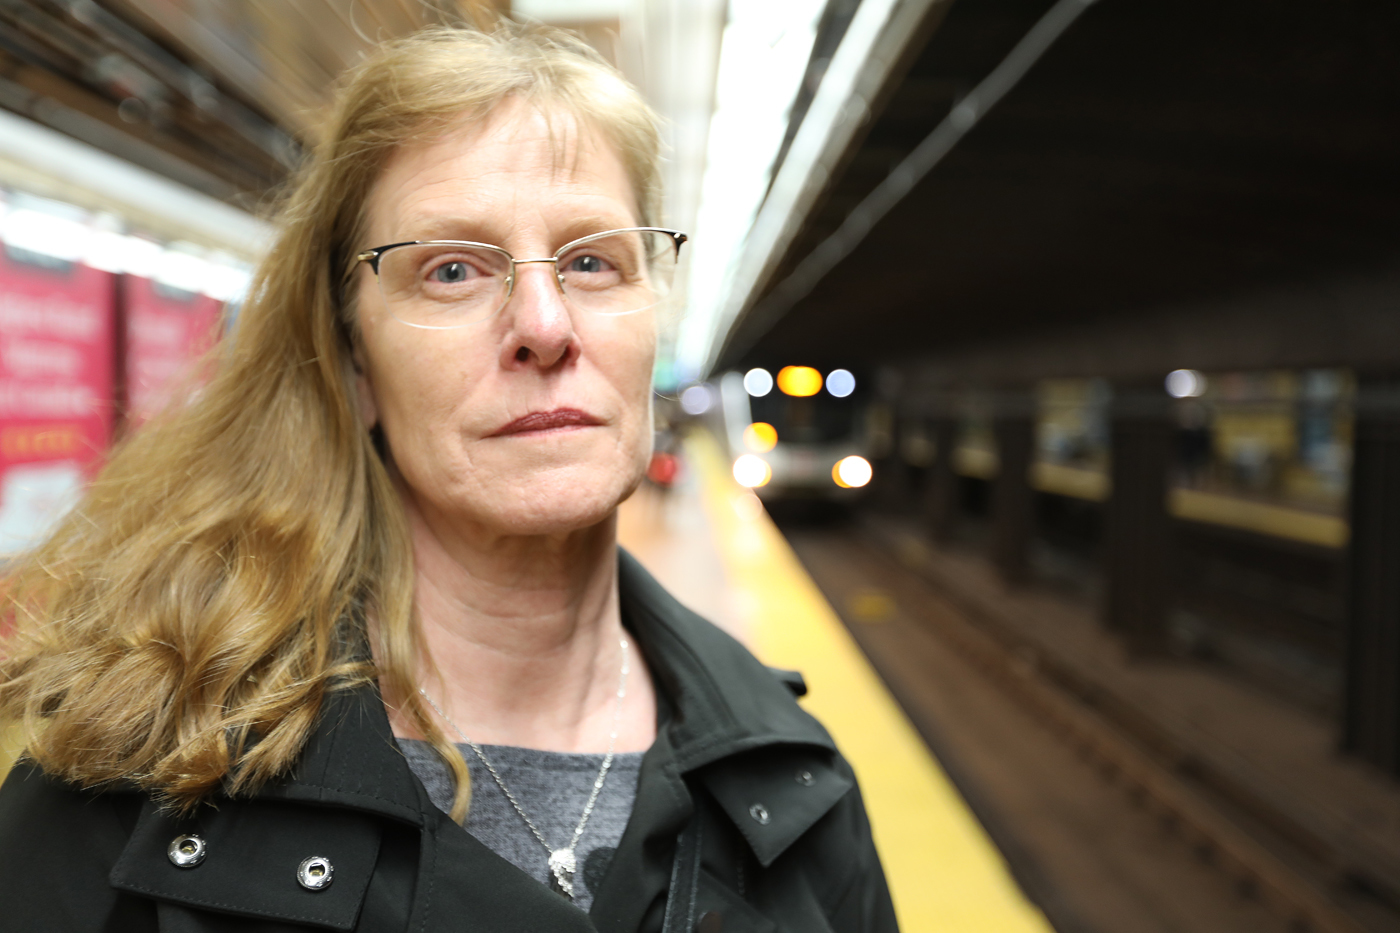 Karen Padbury's son Michael died on Toronto's subway. She supports the TTC's decision to acknowledge it publicly, and hopes commuters will get involved to help prevent subway suicide. (Ousama Farag/CBC)